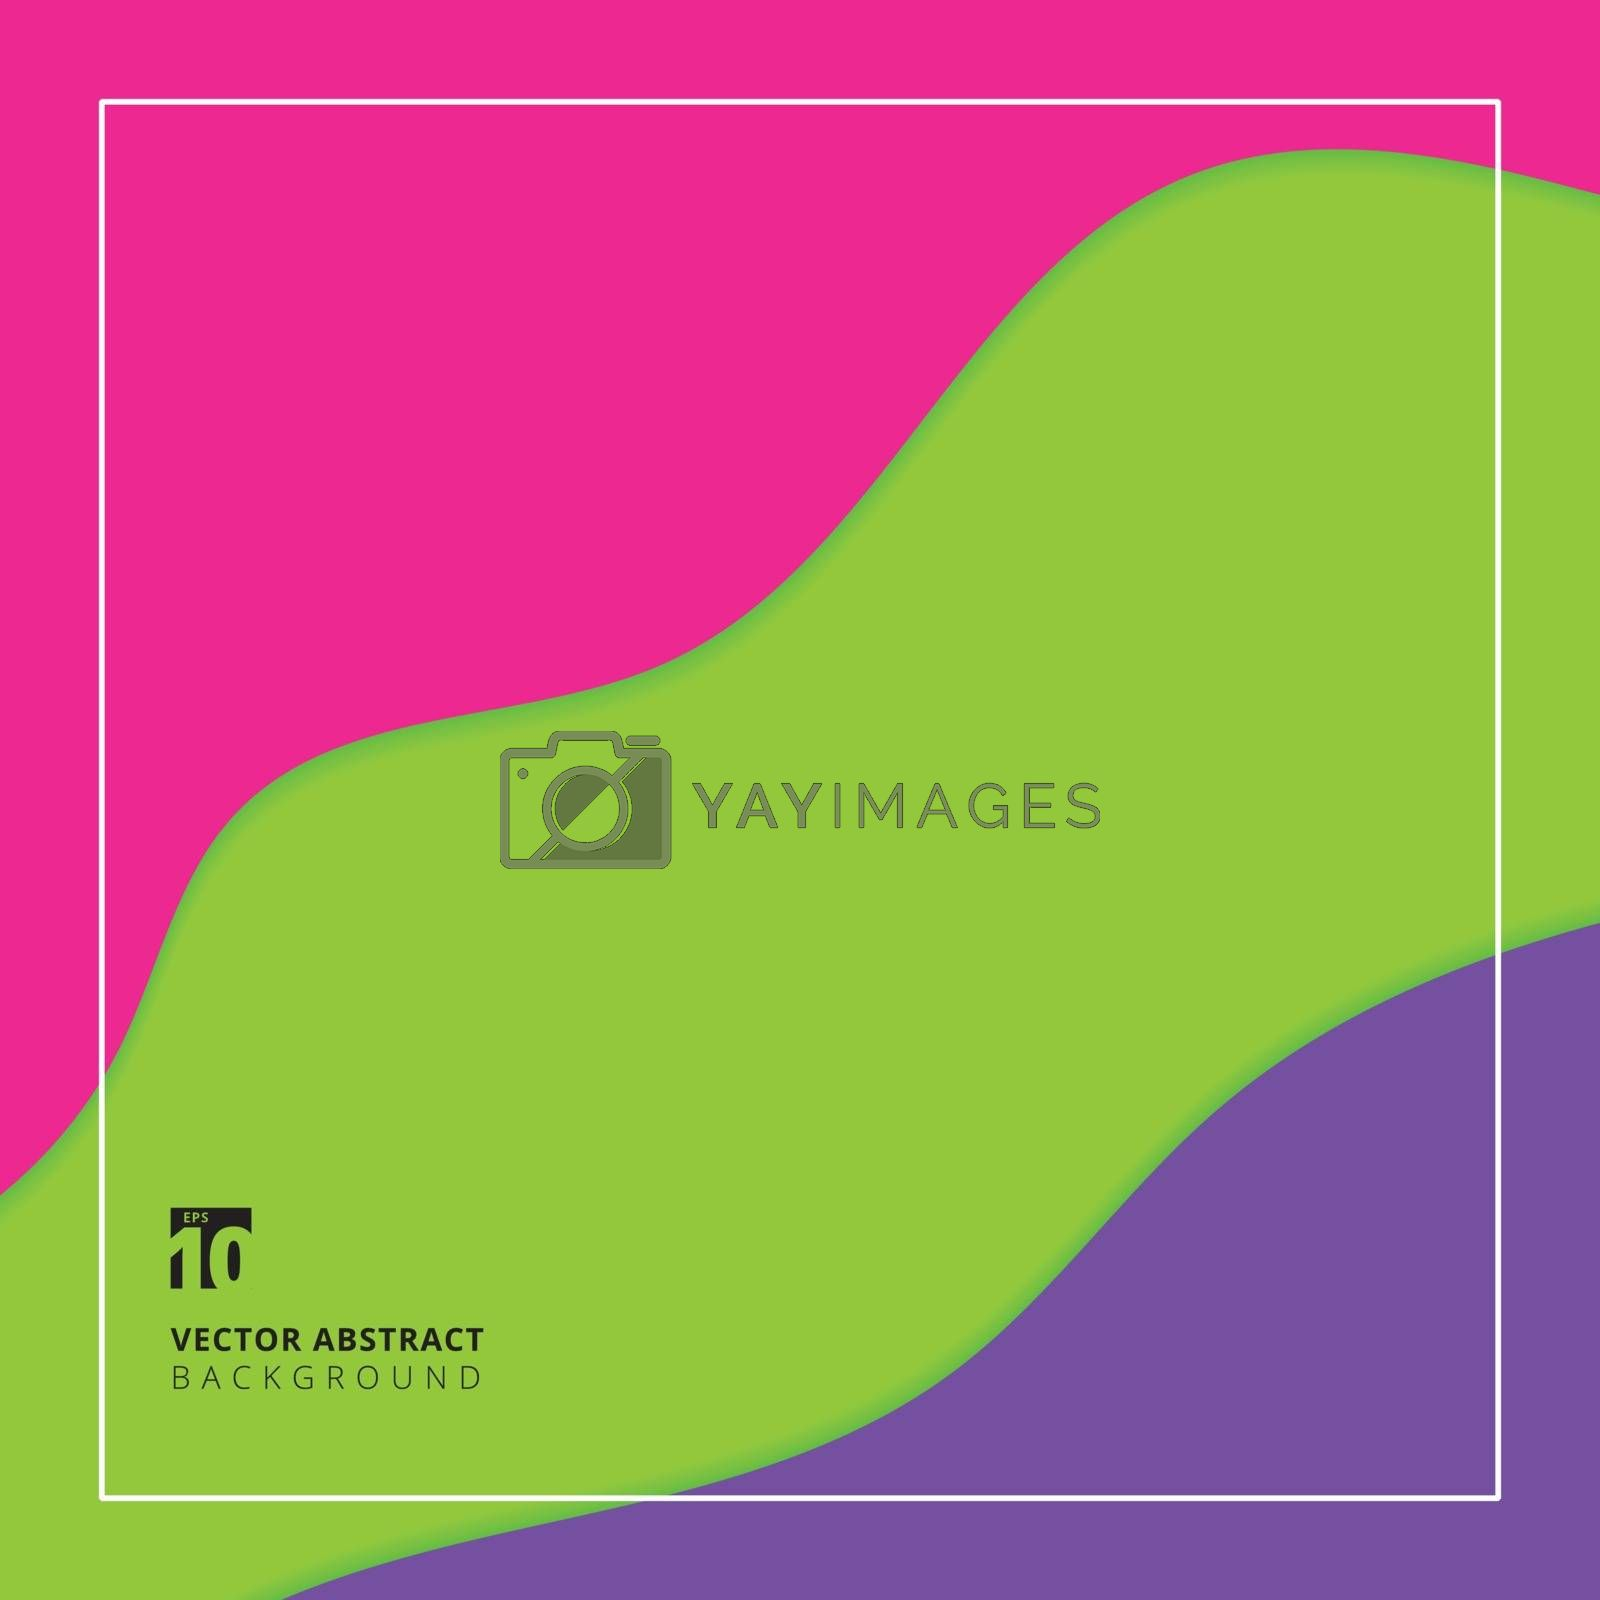 Abstract paper cut wave layer green, purple and pink color backg by phochi